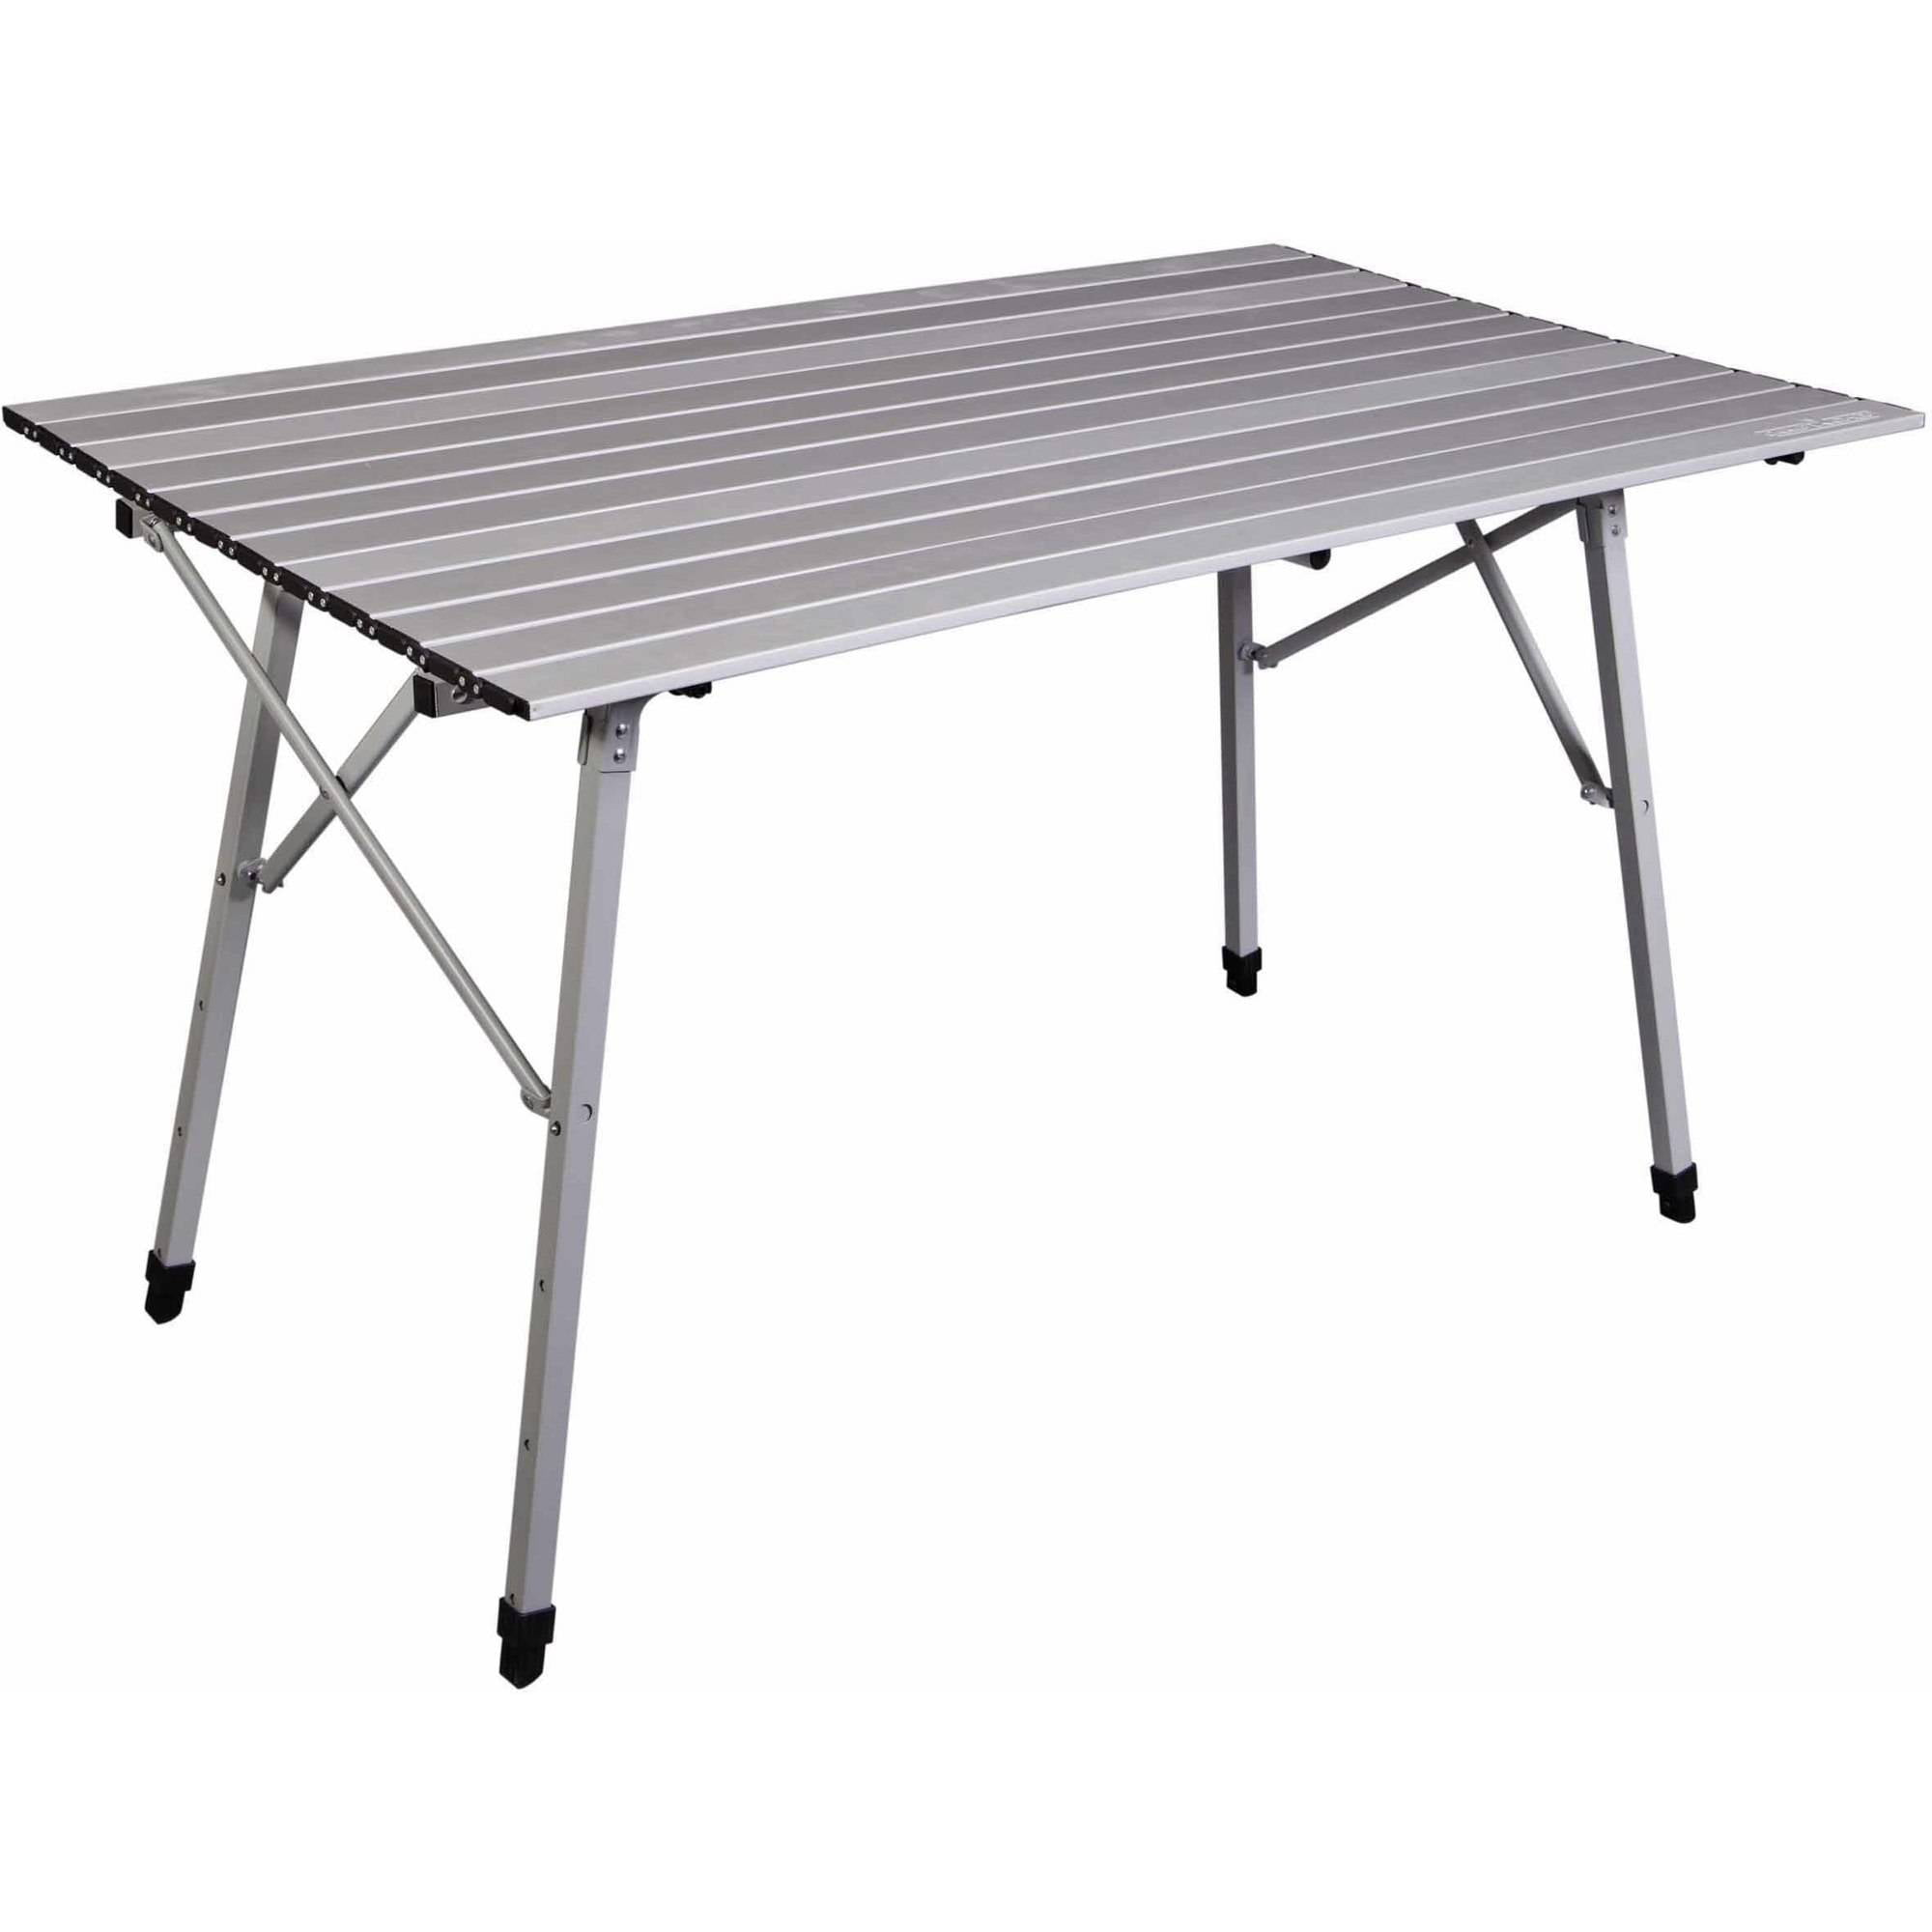 Camp Chef Light Weight Collapsible Aluminum Camp Table by Camp Chef